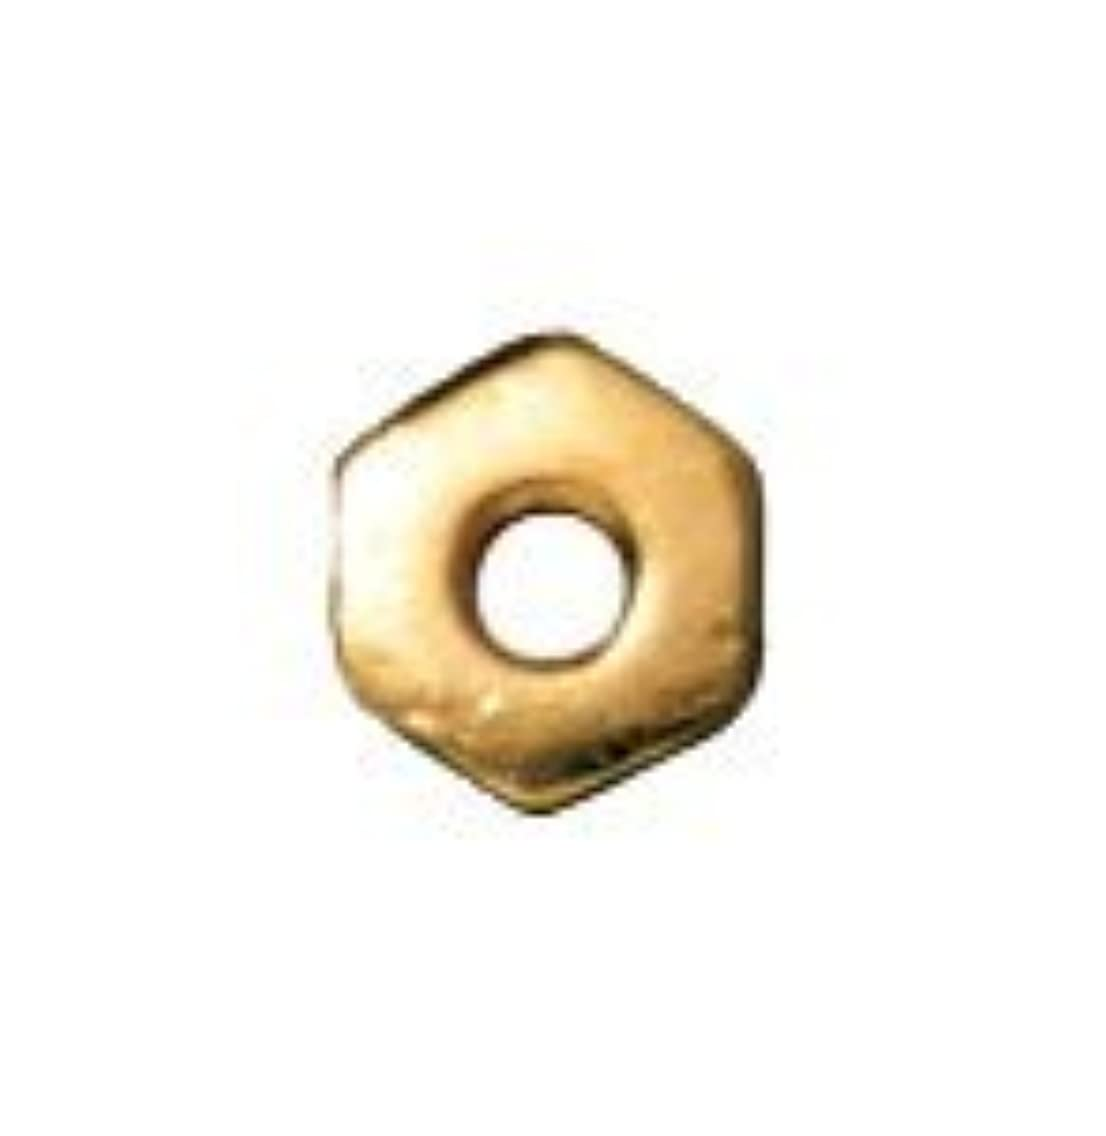 TierraCast Hex Heishi Beads, 4mm, Bright 22K Gold Plated Pewter, 25-Pack